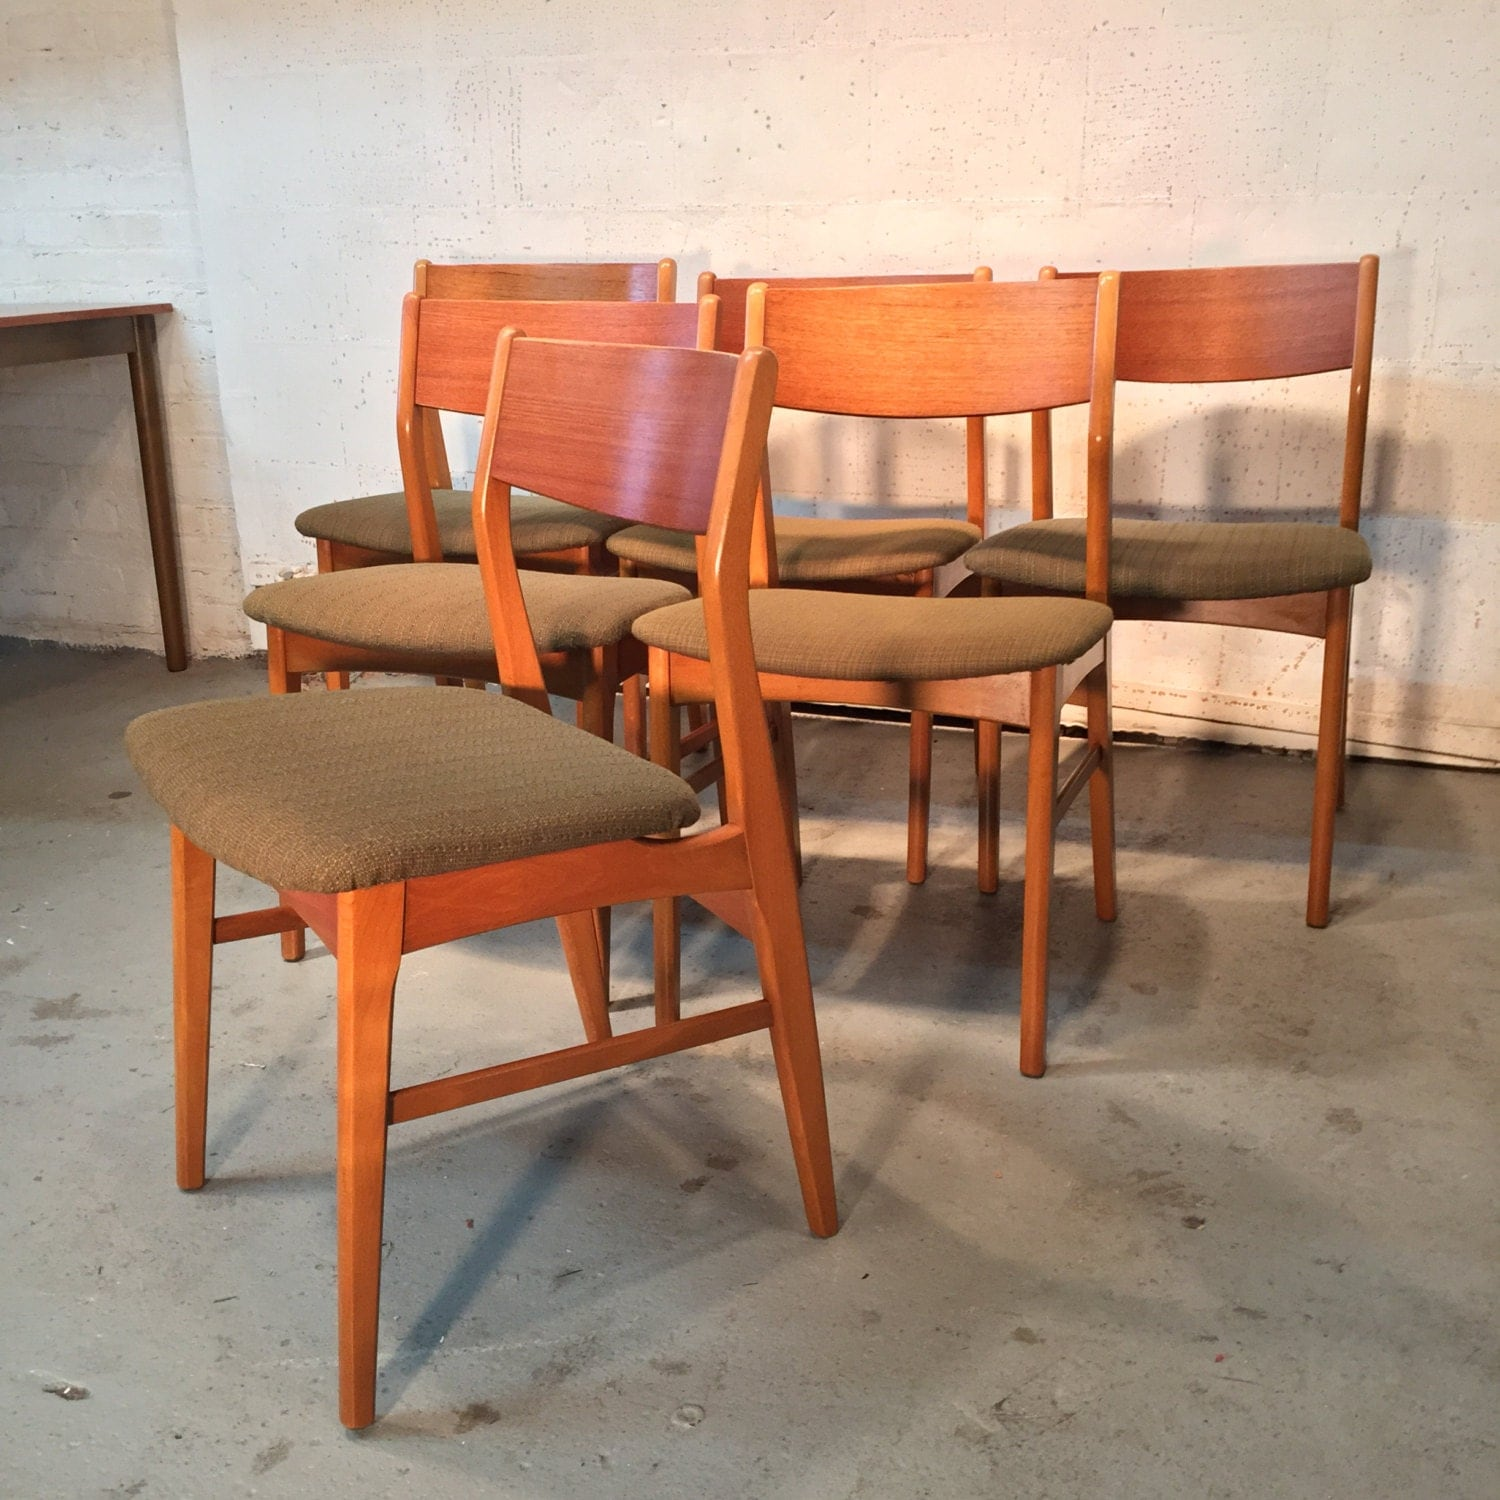 Set Of 6 Danish Mid Century Modern Dining Chairs 1 100 OBO Free NYC Deliv